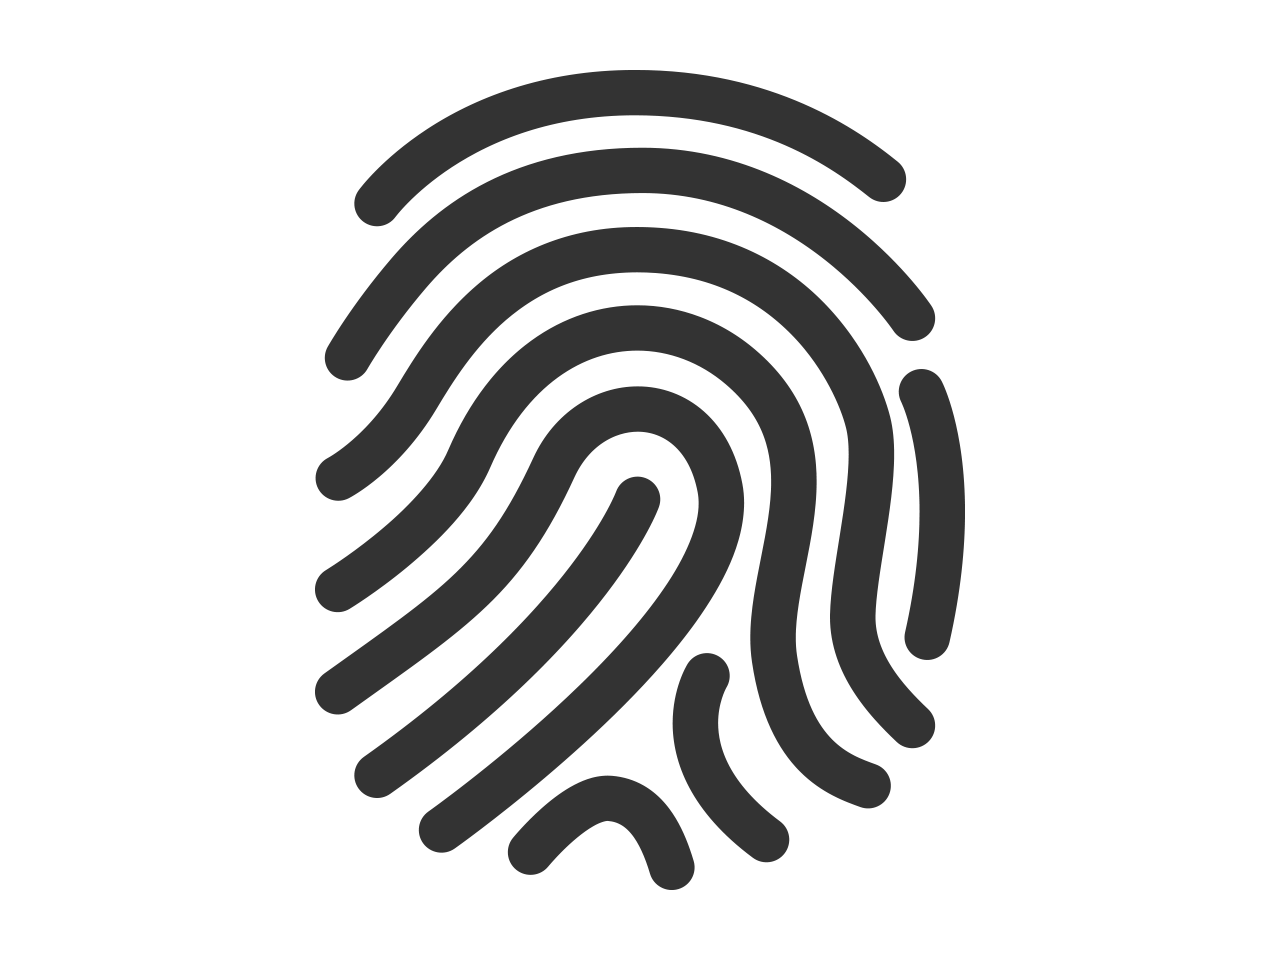 1280x960 Thumbprint Vector Free Download On Melbournechapter